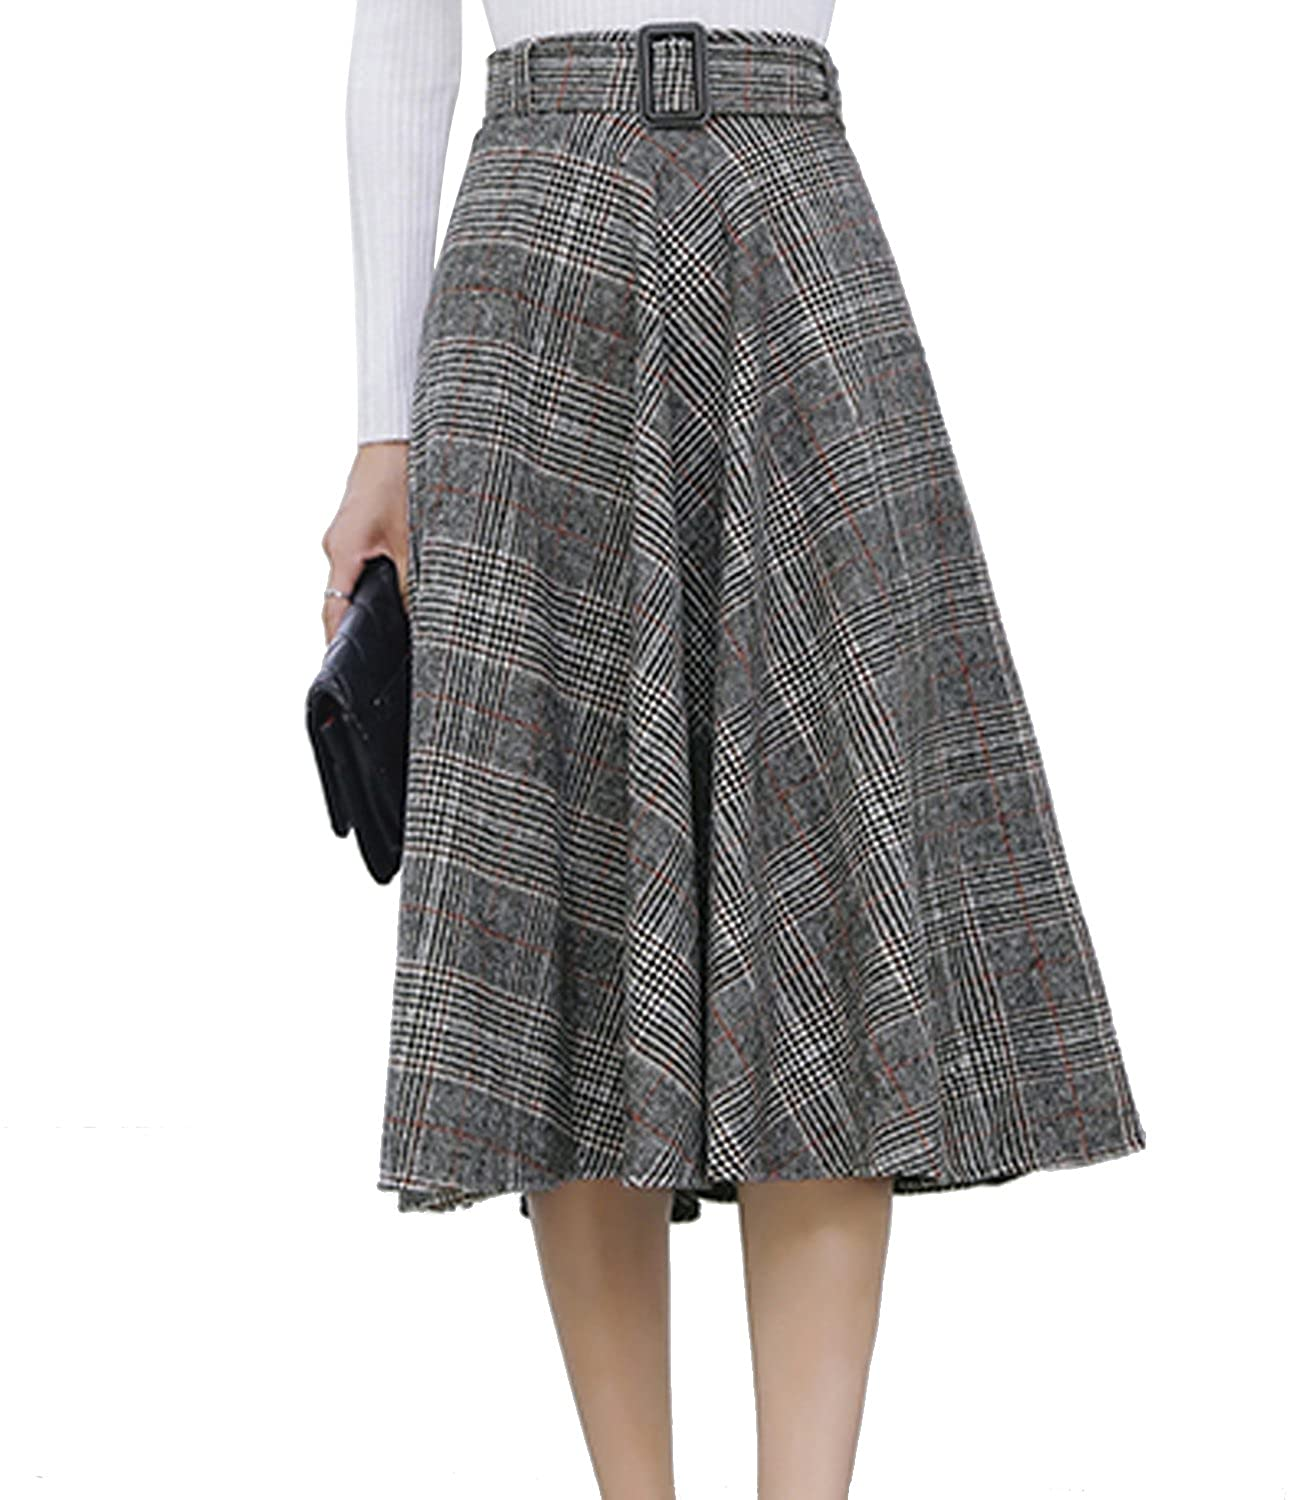 1940s Style Skirts- High Waist Vintage Skirts Sanifer Womens Warm Woolen Plaid Gray Pleated A Line Skirt with Belt $27.99 AT vintagedancer.com